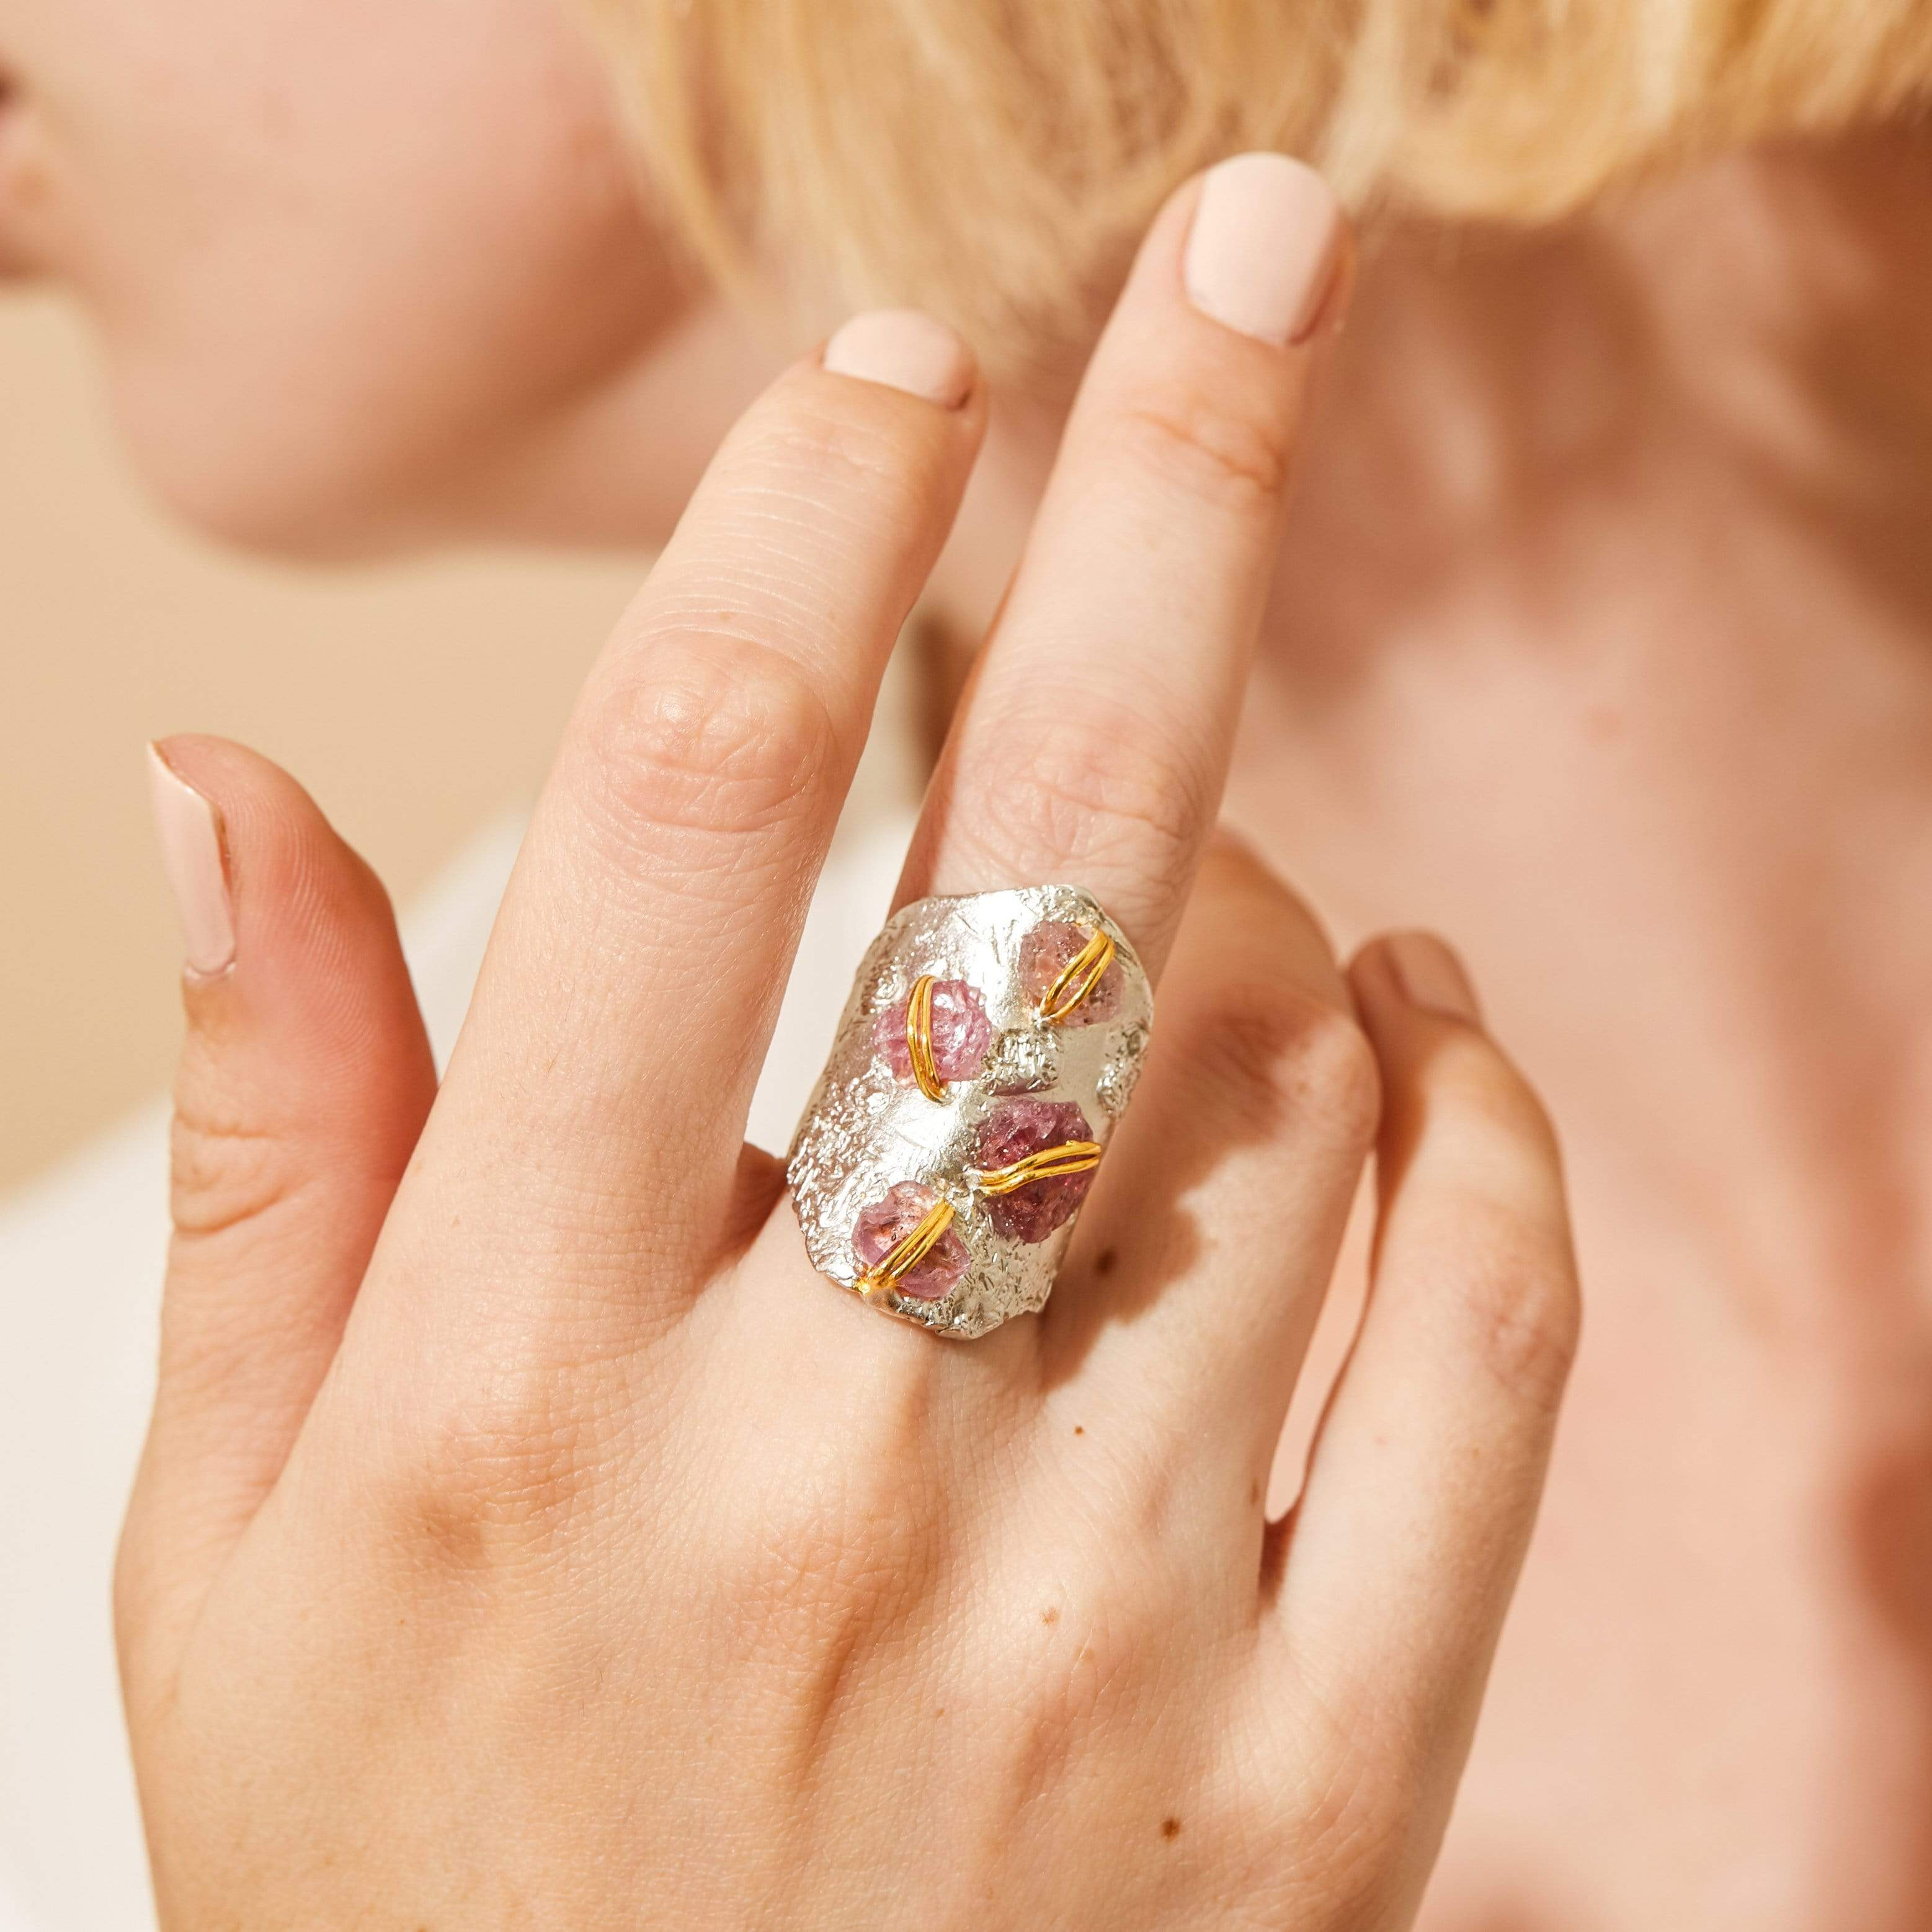 Shadia Ring, Gold, Handmade, Rhodium, Ruby, silver, spo-disabled, StoneColor:PinkRuby, Style:Everyday, Type:StoneCandyWired Ring